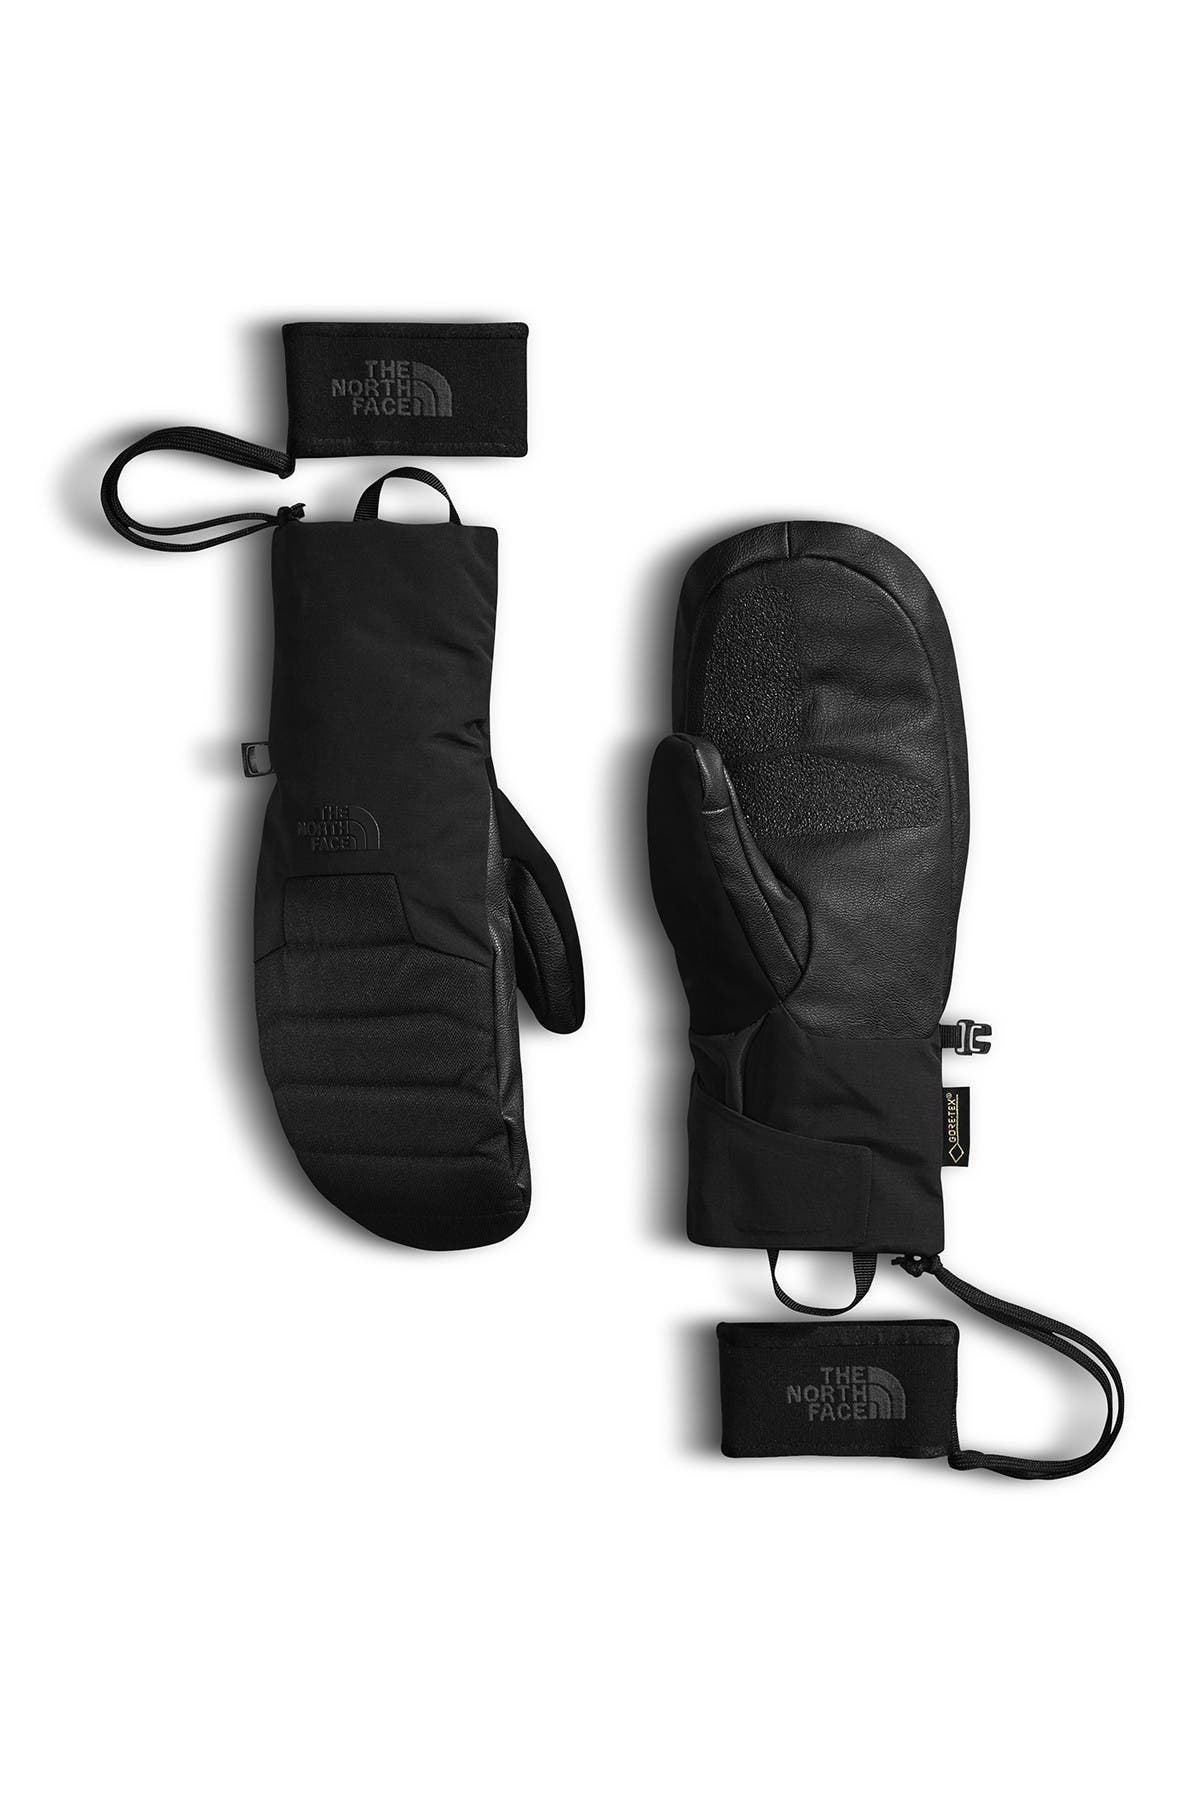 Image of The North Face Montana GORE-TEX SG Mittens